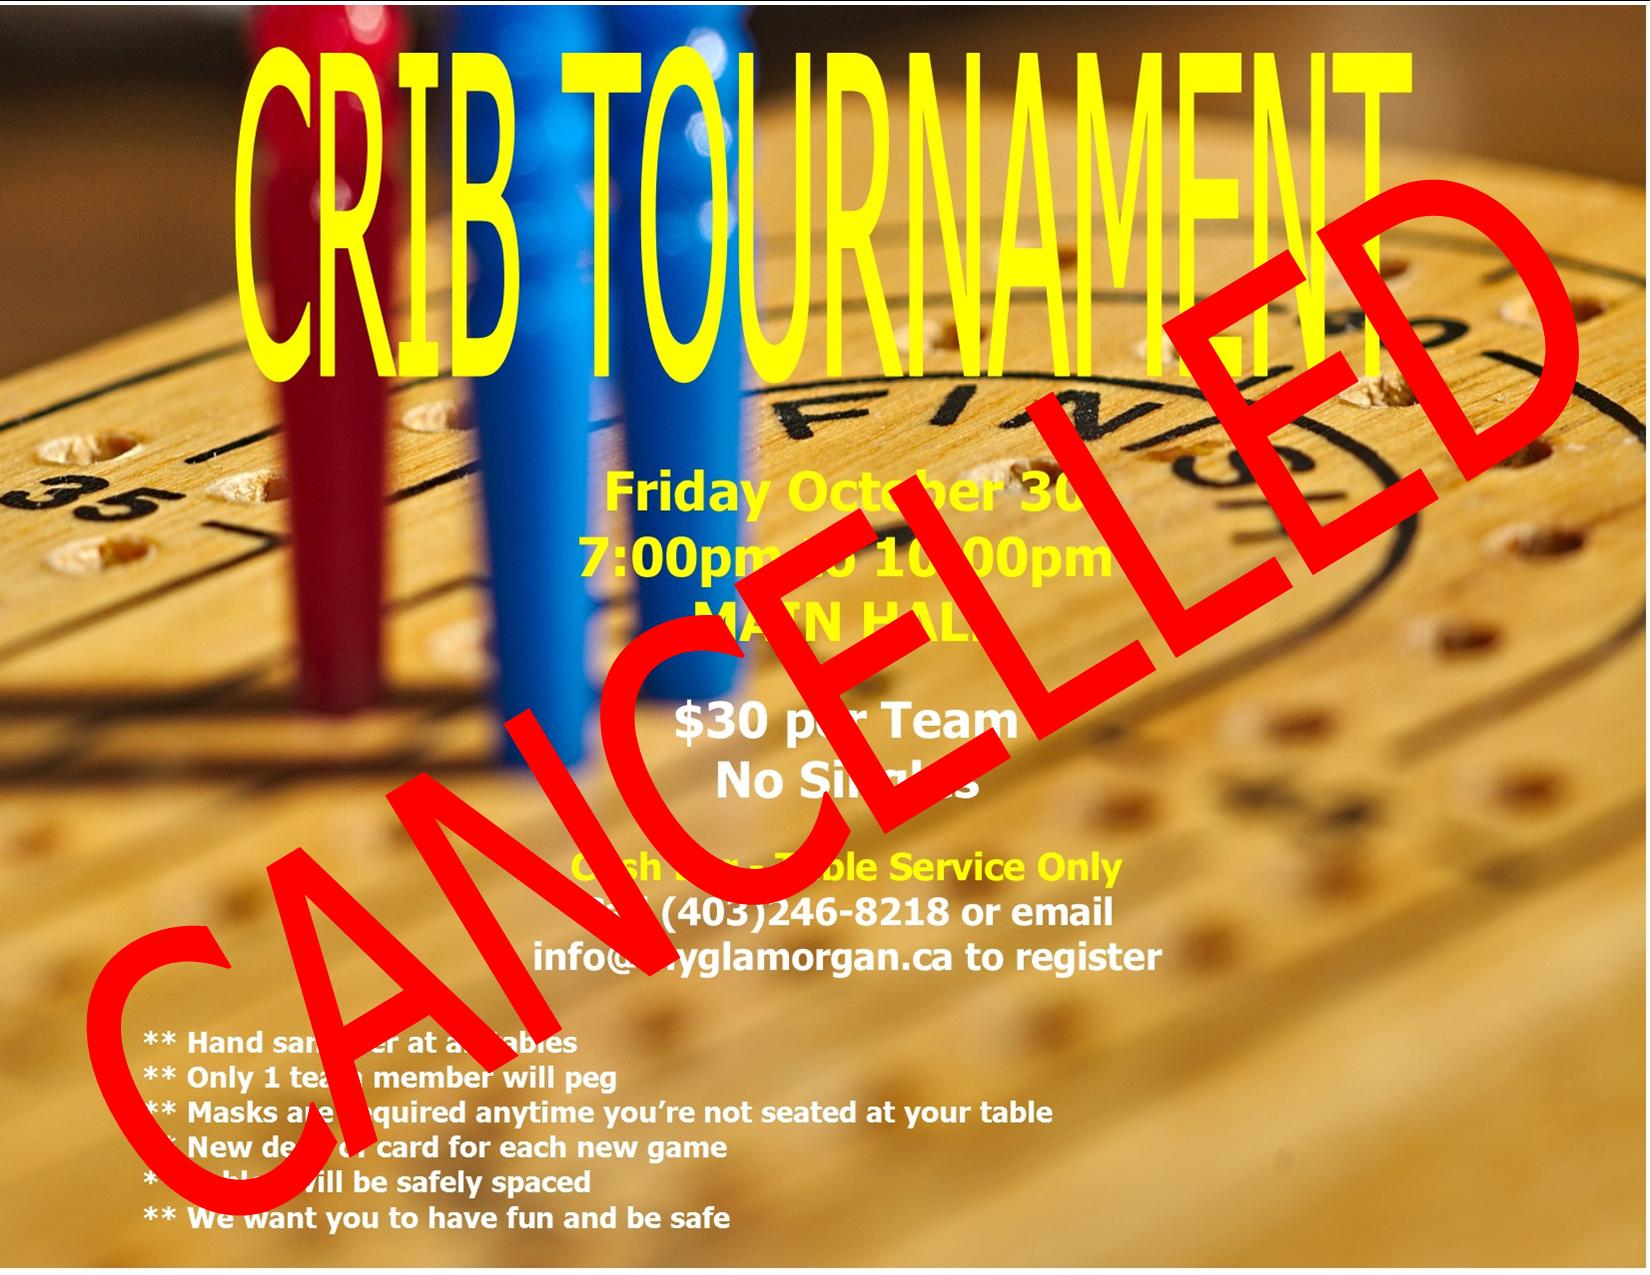 Crib tourney cancelled